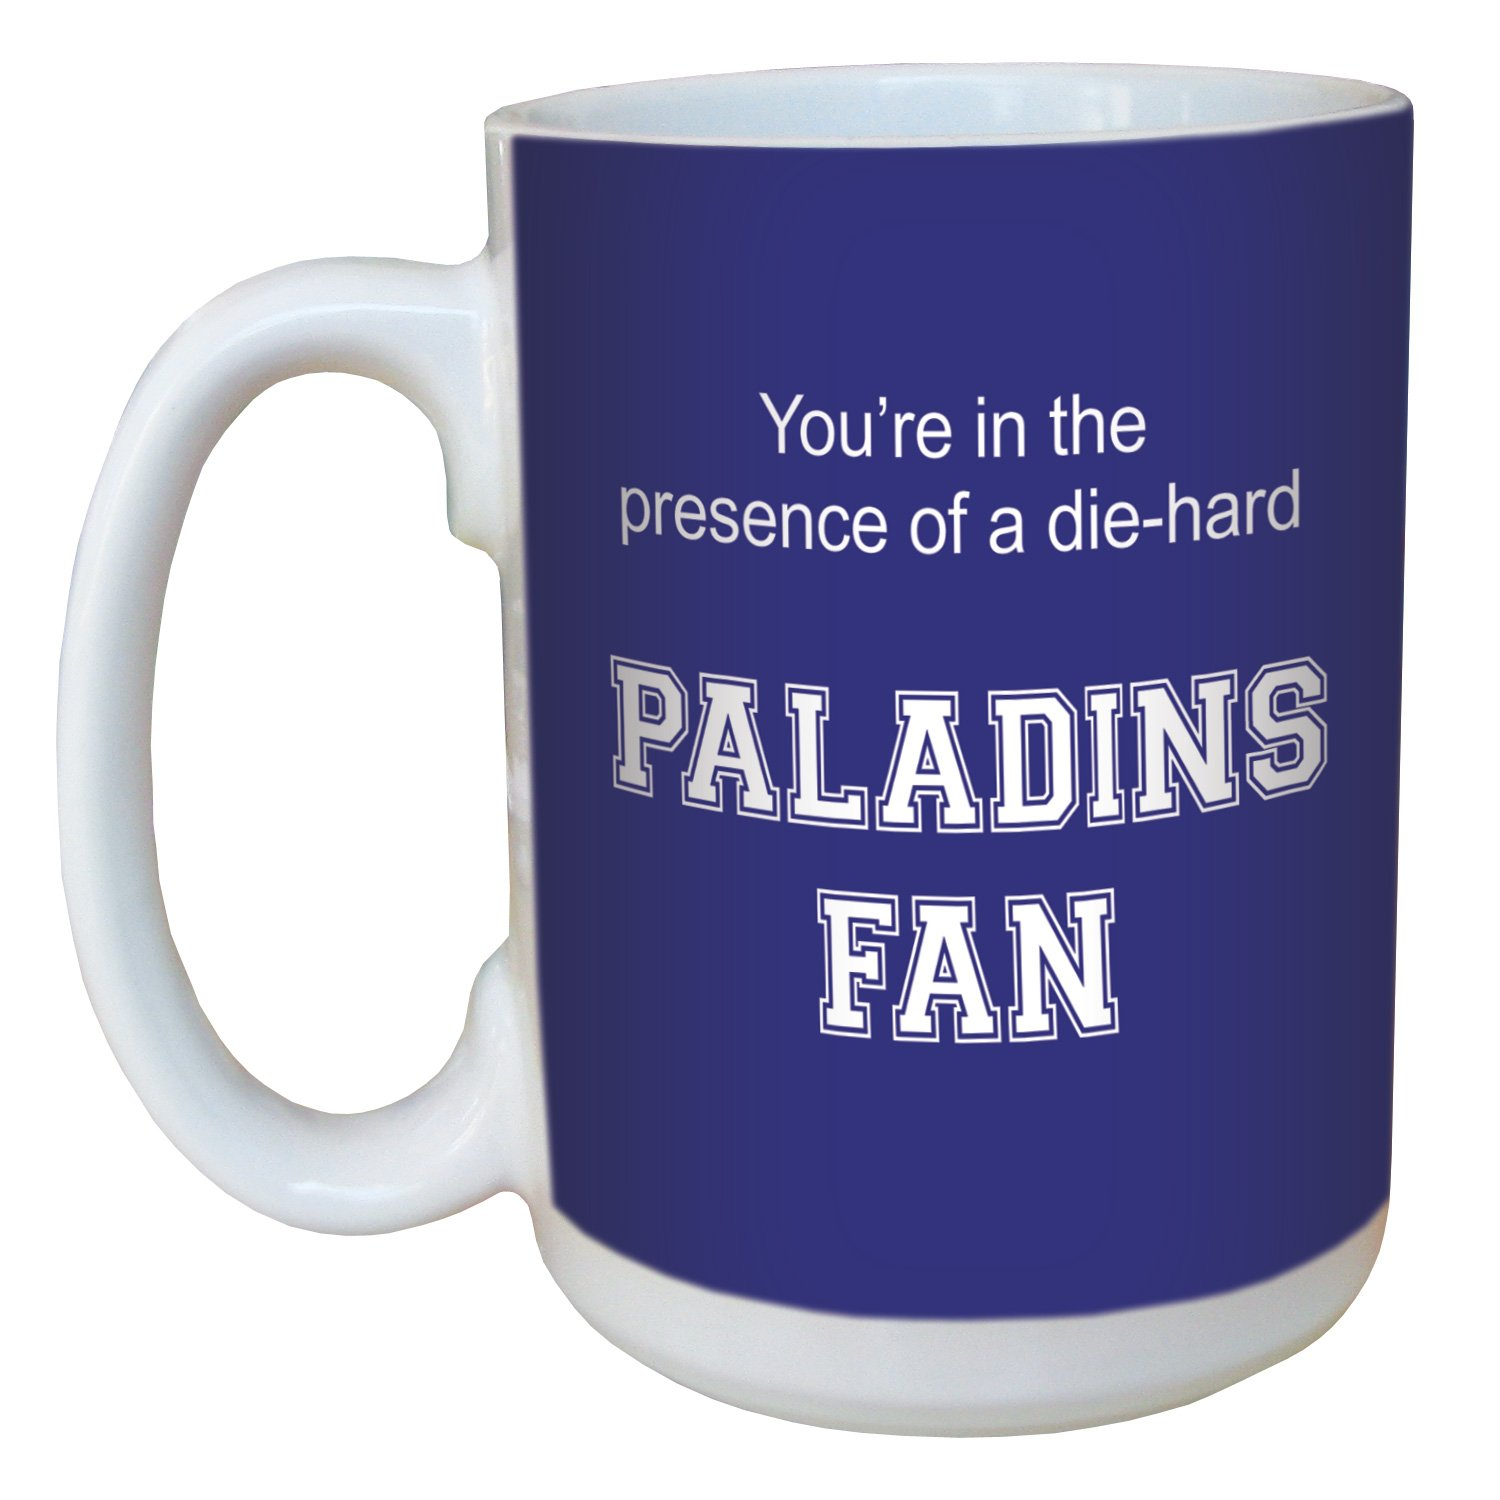 15-Ounce Tree-Free Greetings lm44440 Paladins College Football Fan Ceramic Mug with Full-Sized Handle